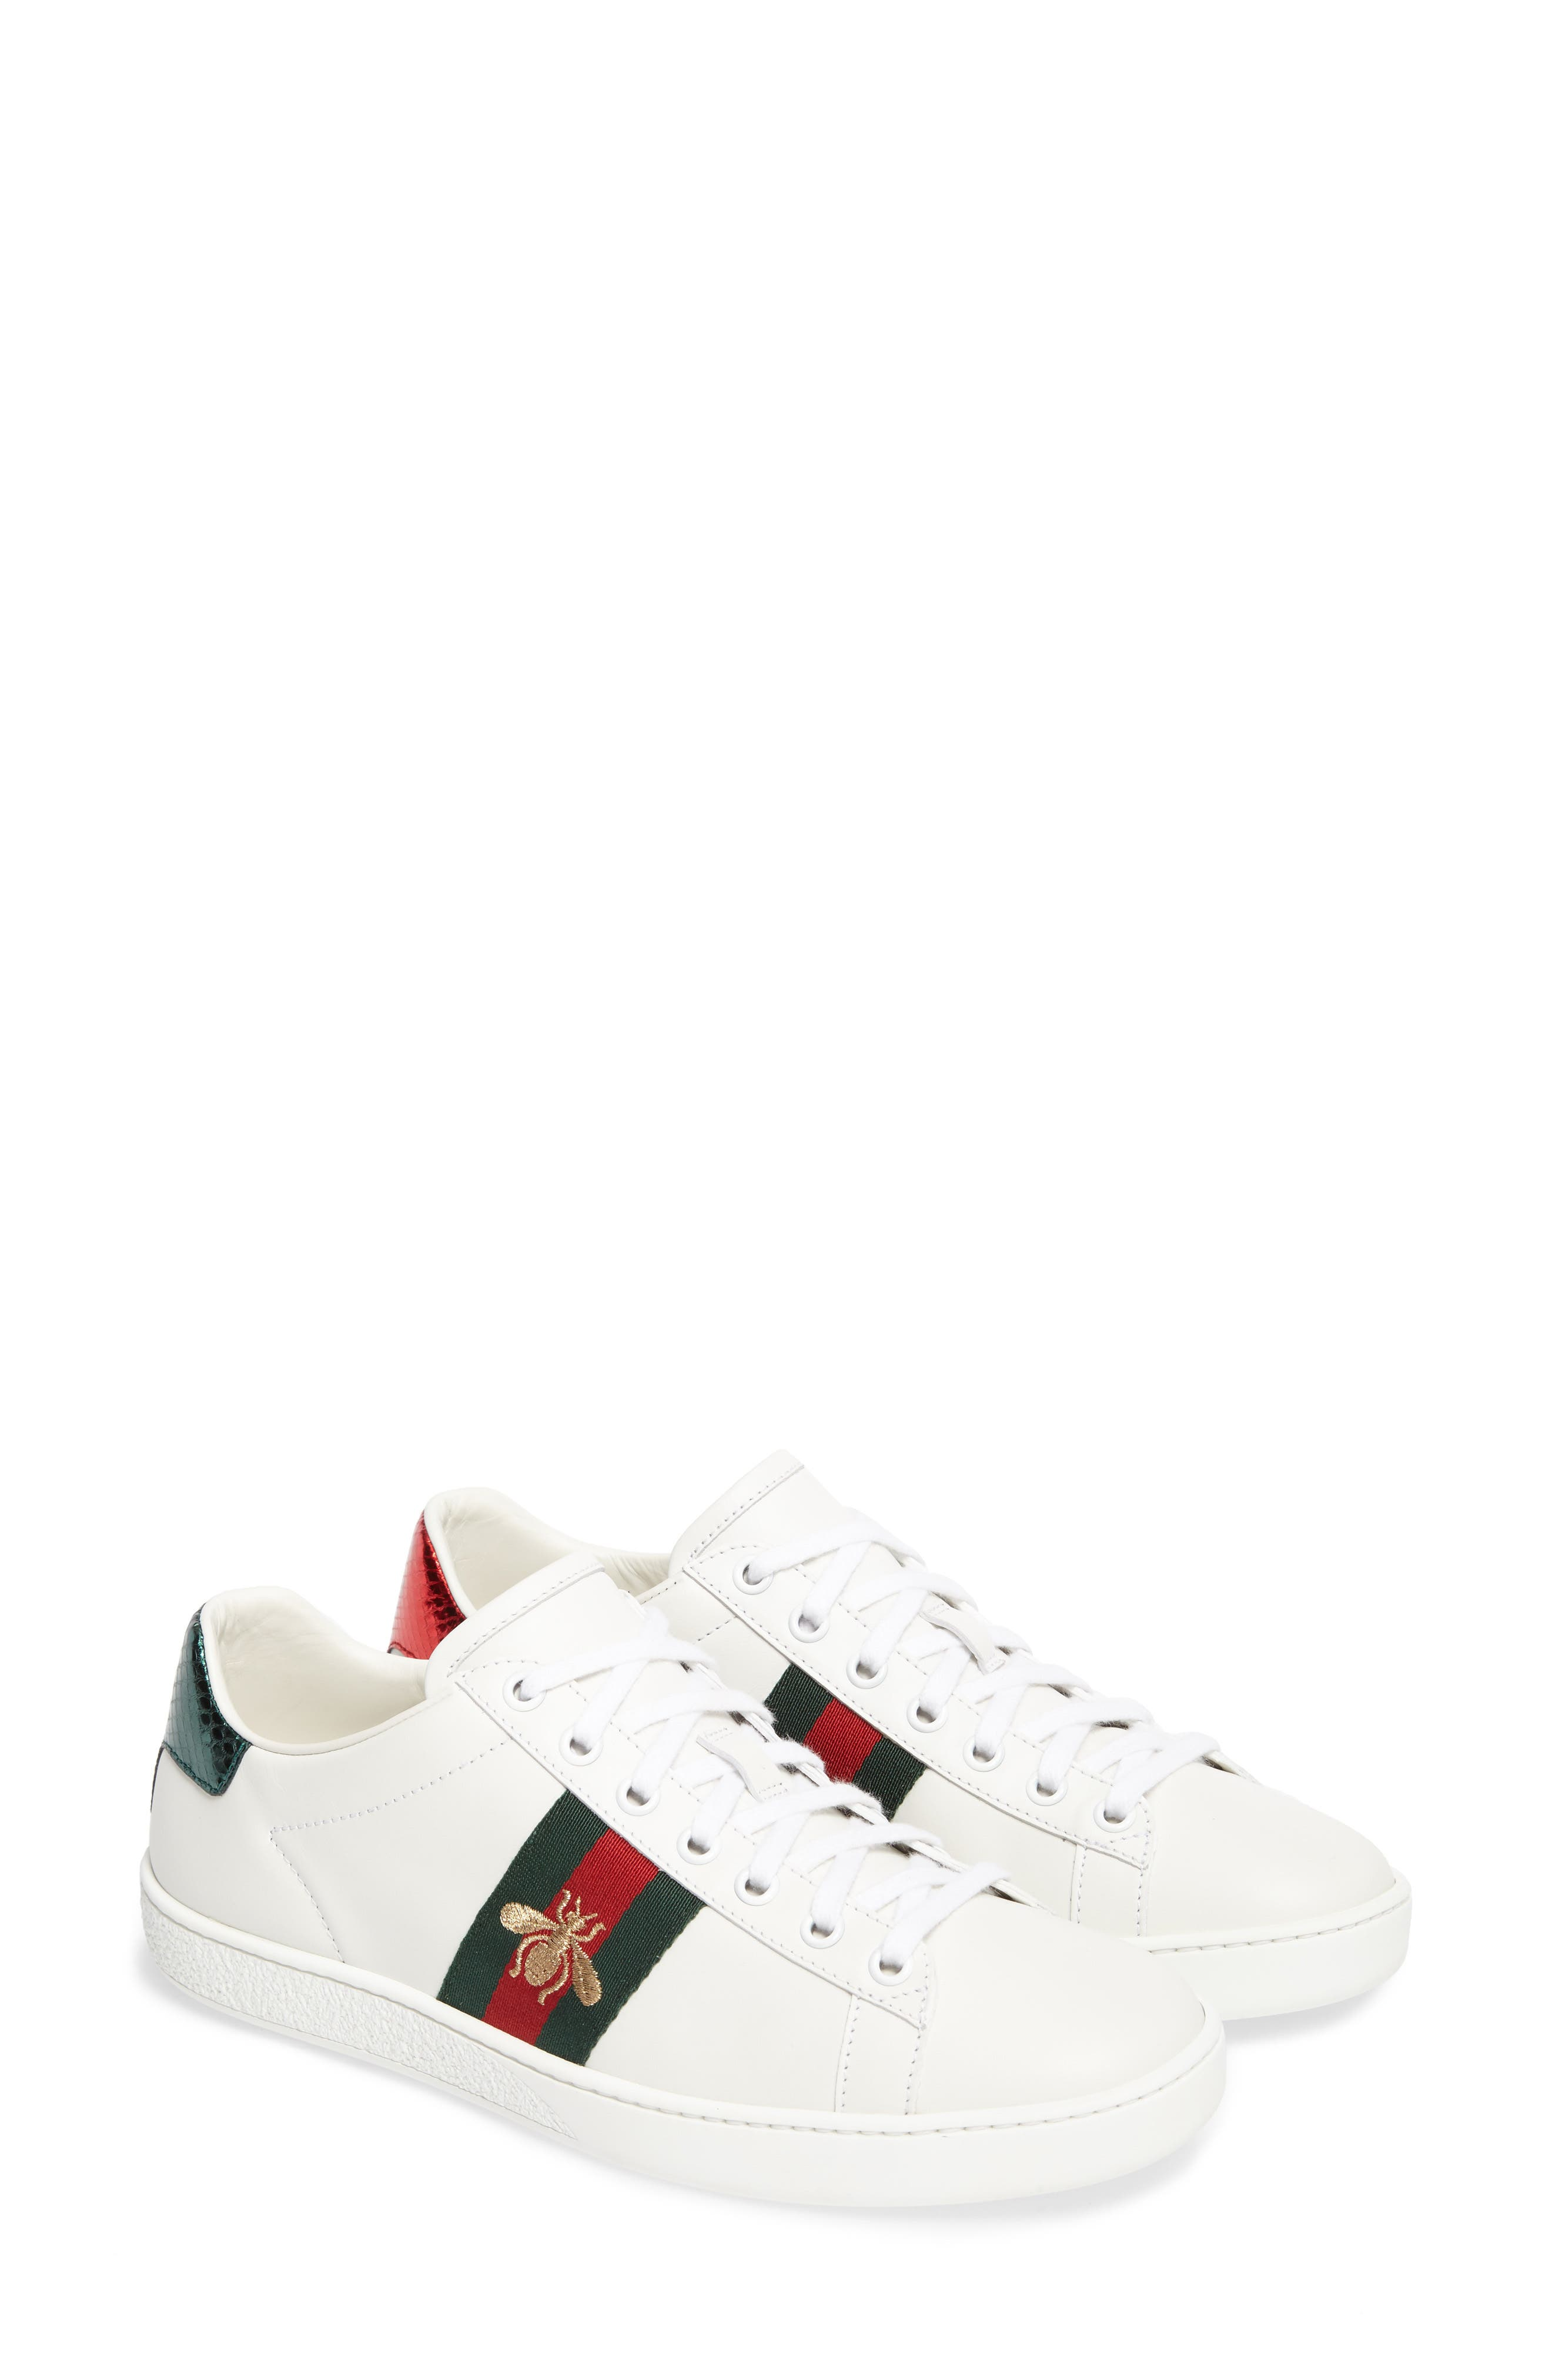 GUCCI, New Ace Sneaker, Main thumbnail 1, color, WHITE LEATHER